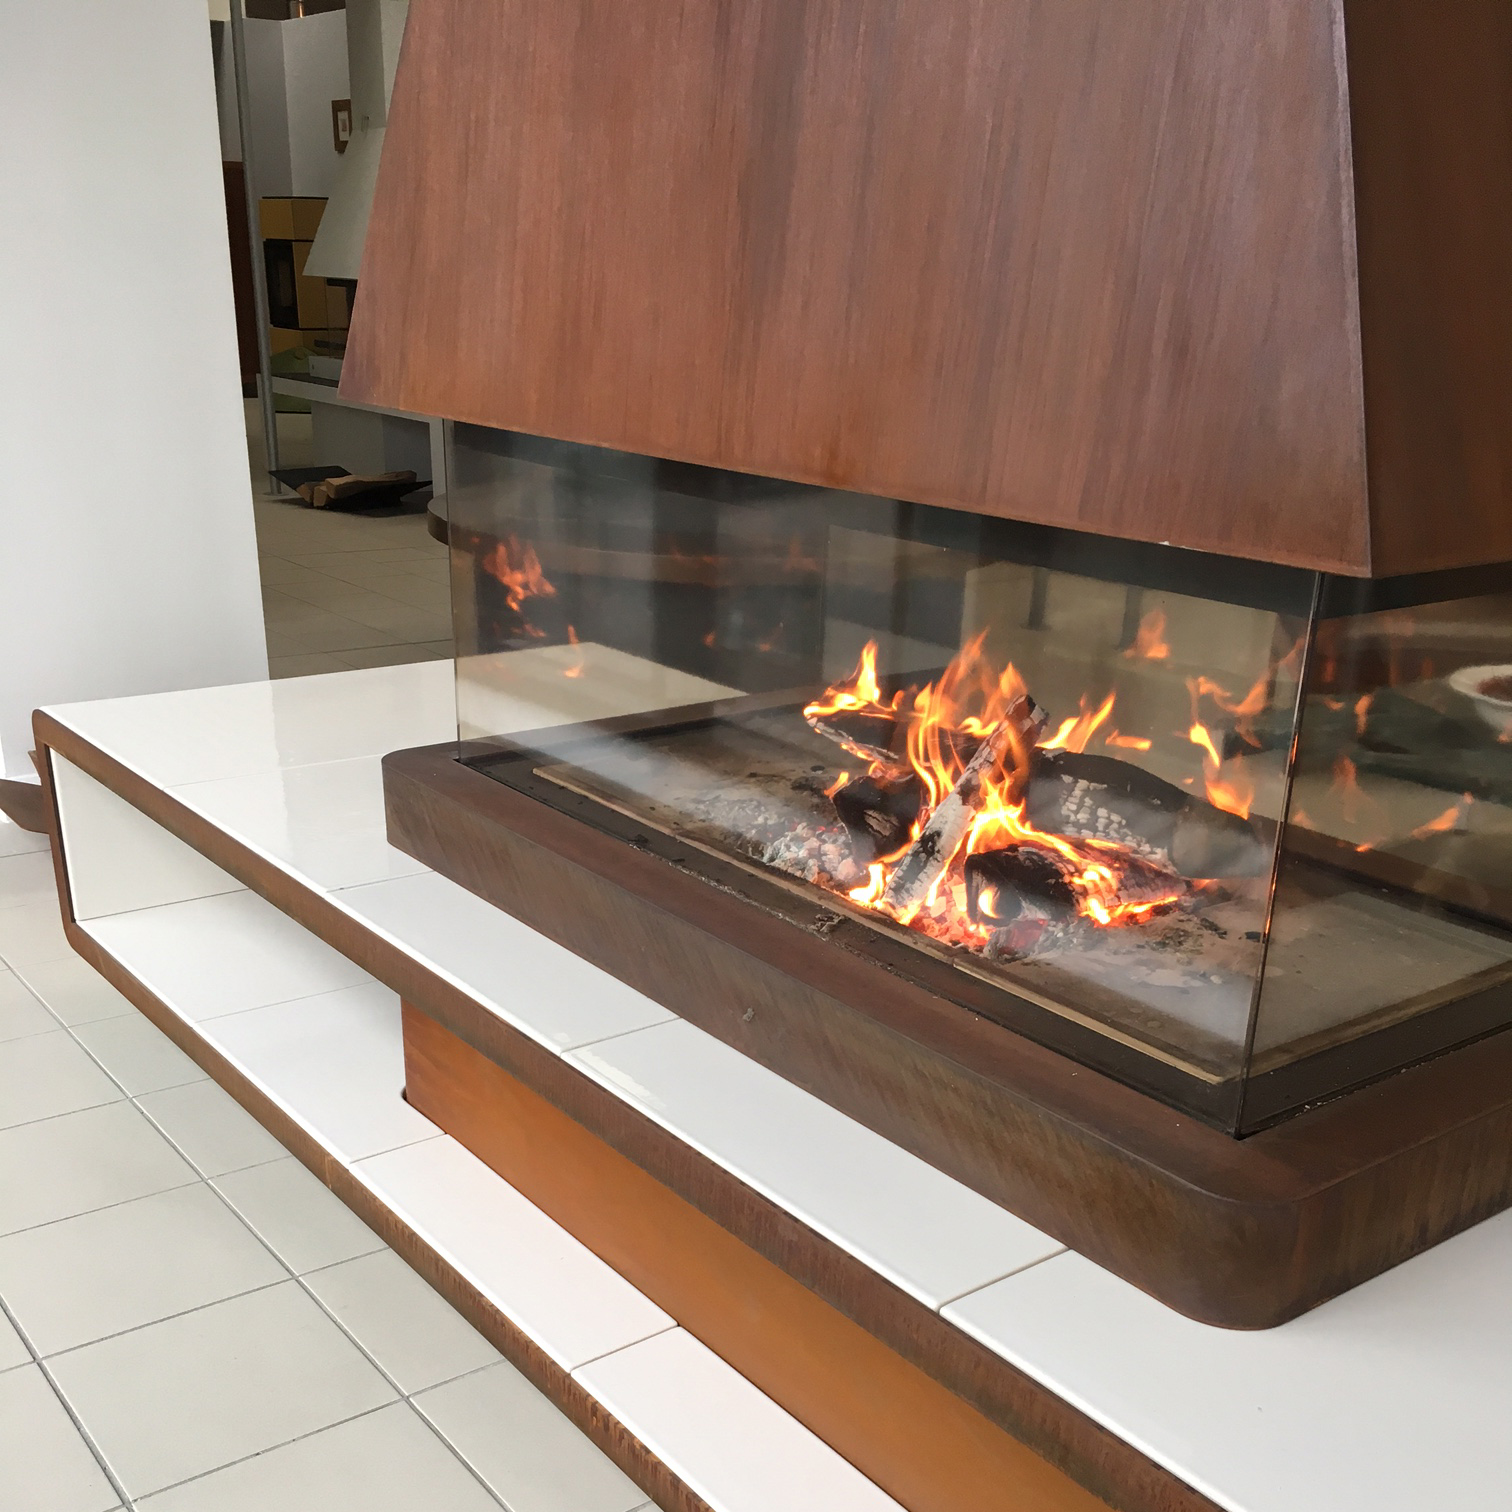 Contemporary-Modern-Glass-Panoramic-360-Wood-Burning-Fire-Piazzetta-Helsinki-2